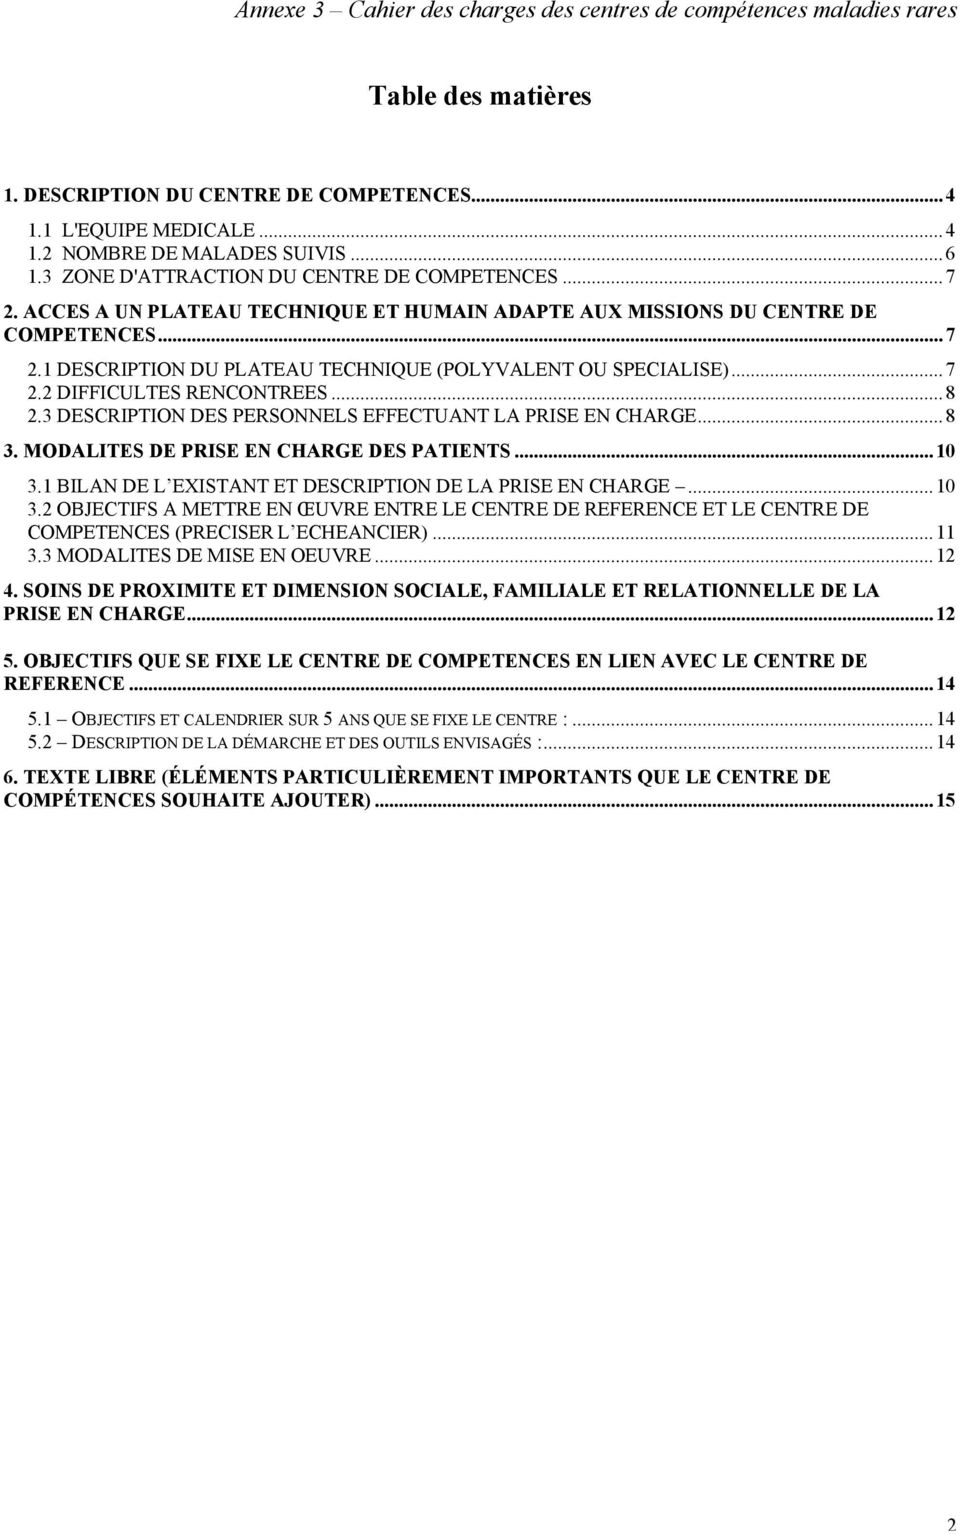 3 DESCRIPTION DES PERSONNELS EFFECTUANT LA PRISE EN CHARGE...8 3. MODALITES DE PRISE EN CHARGE DES PATIENTS...10 3.